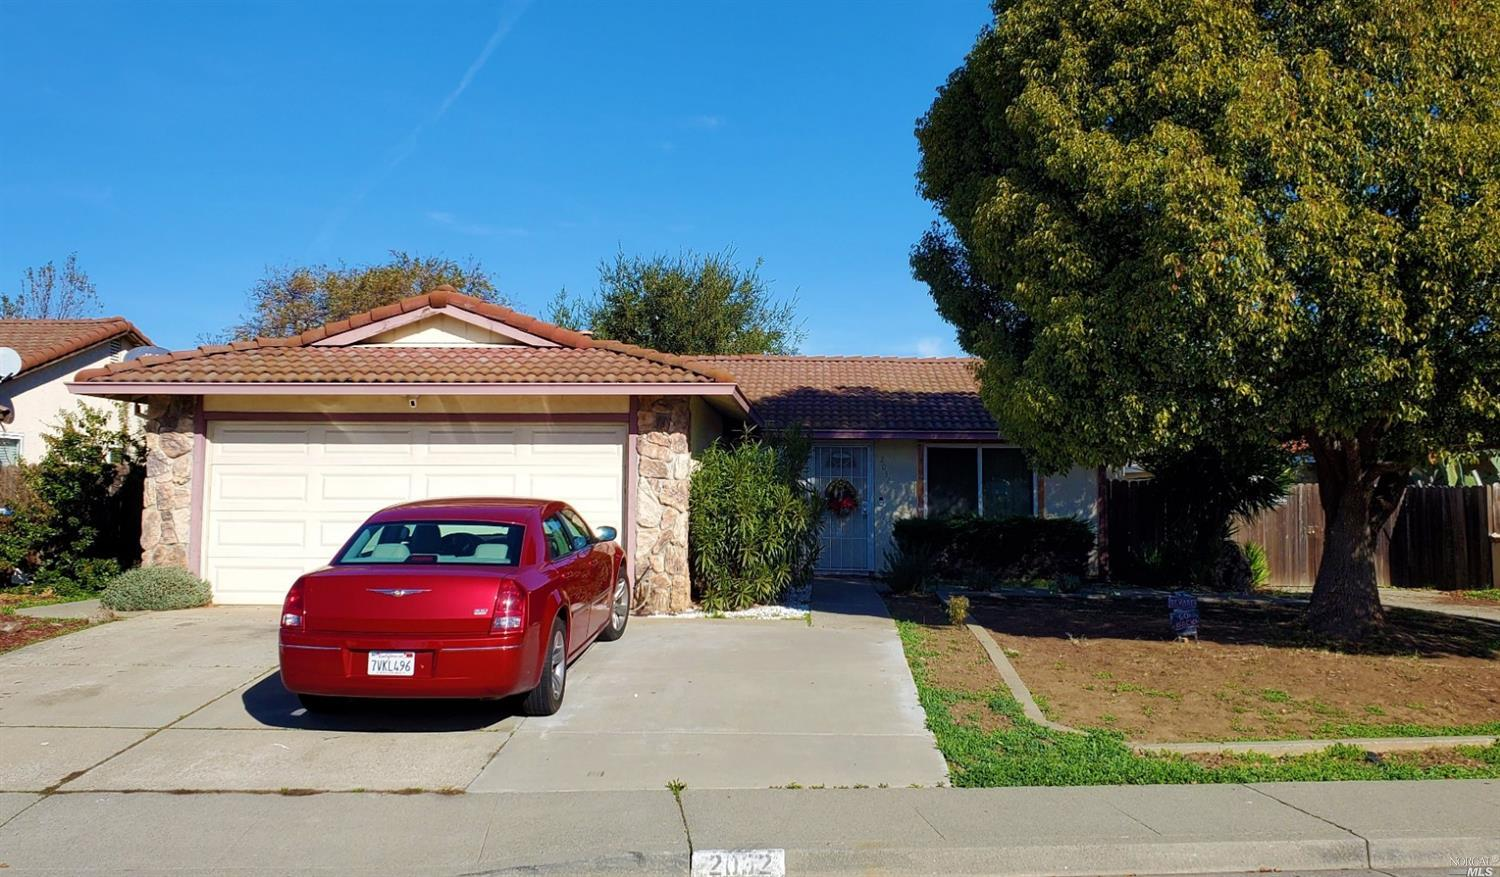 Charming 3 bedroom home, near freeway.  Kitchen has granite counter tops with stainless steel stove.